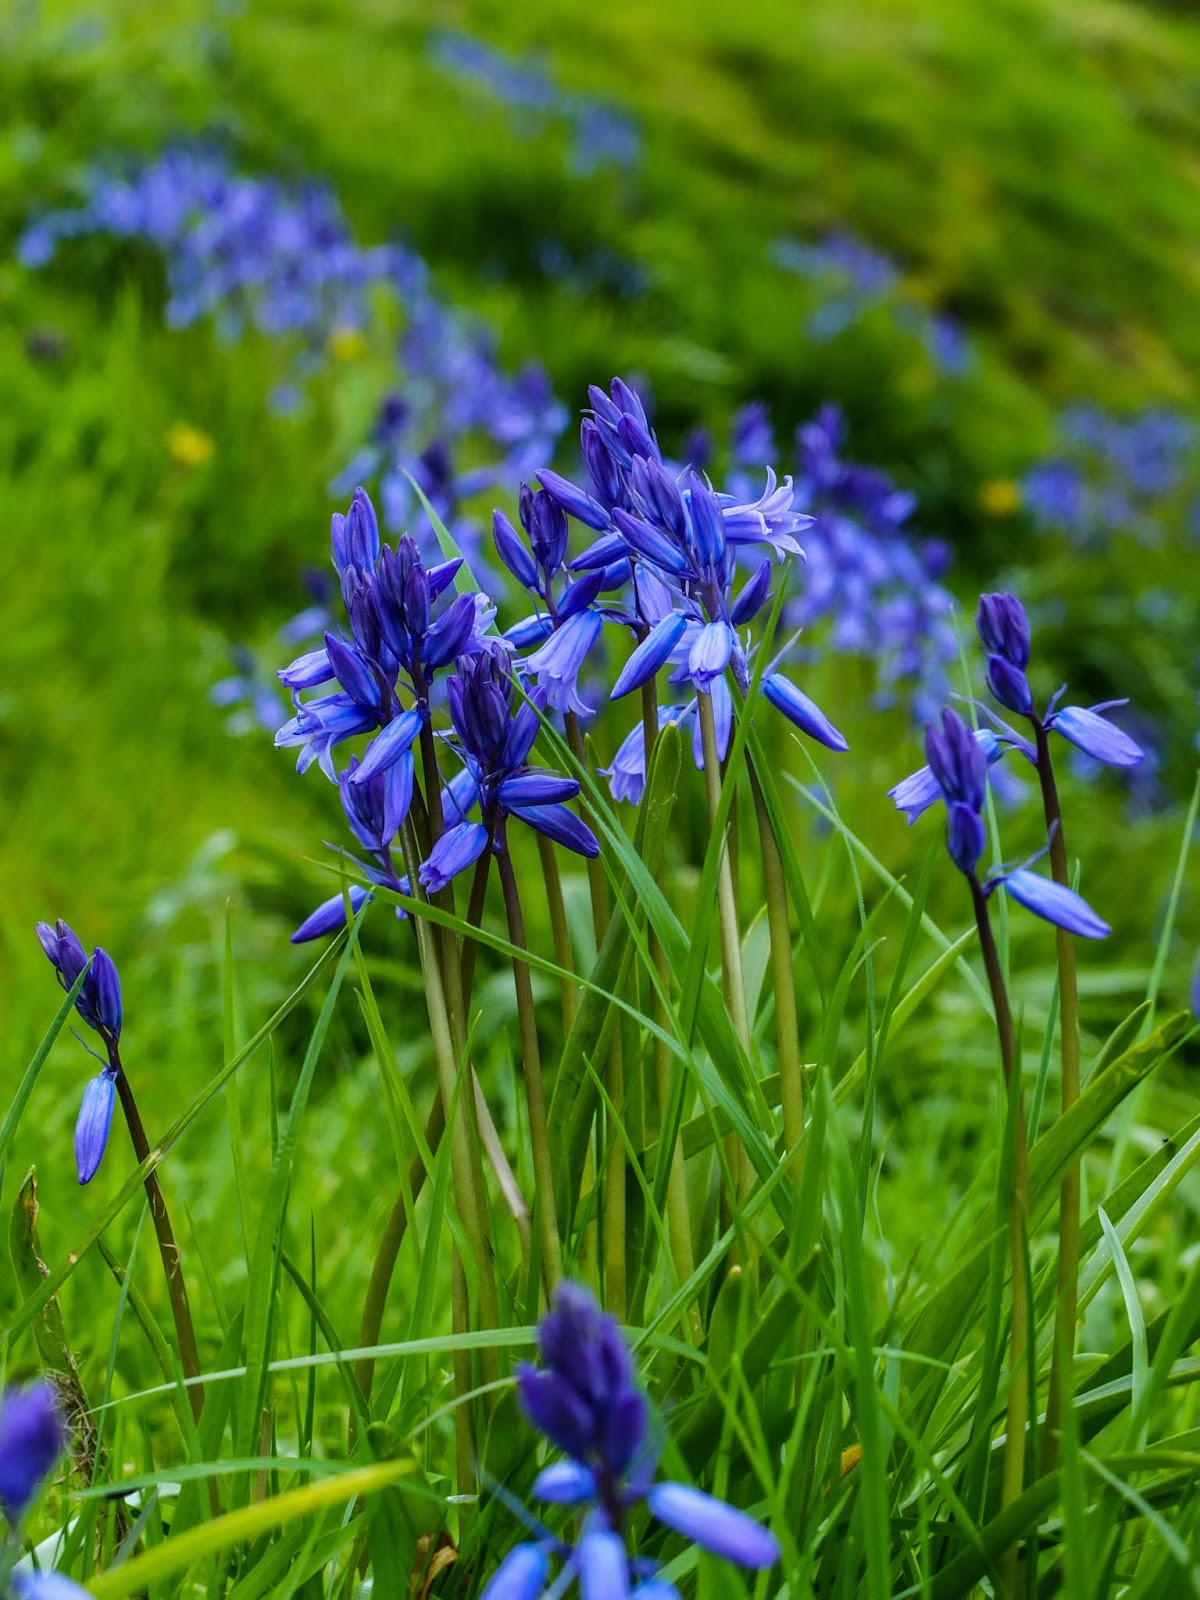 Clumps of bluebells flowering on an embankment in the grass.